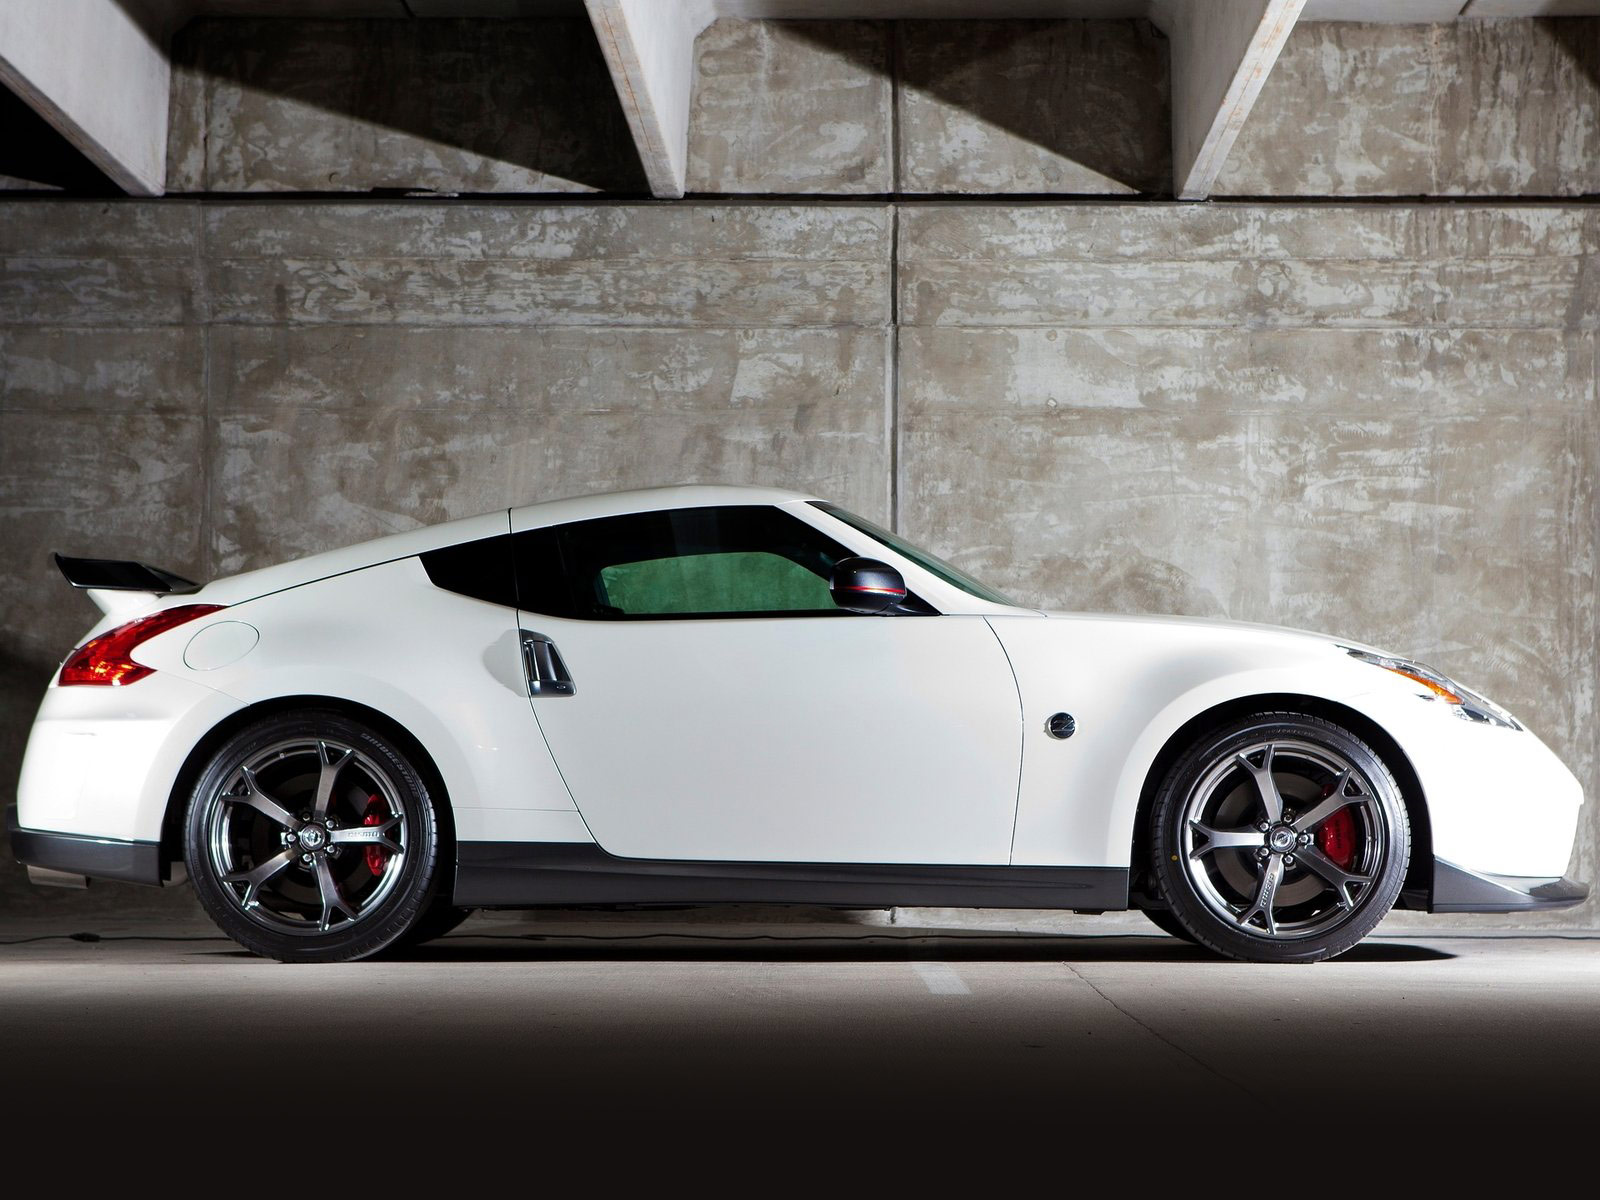 2014 Nissan 370Z Nismo Japanese Car Photos 3 ...